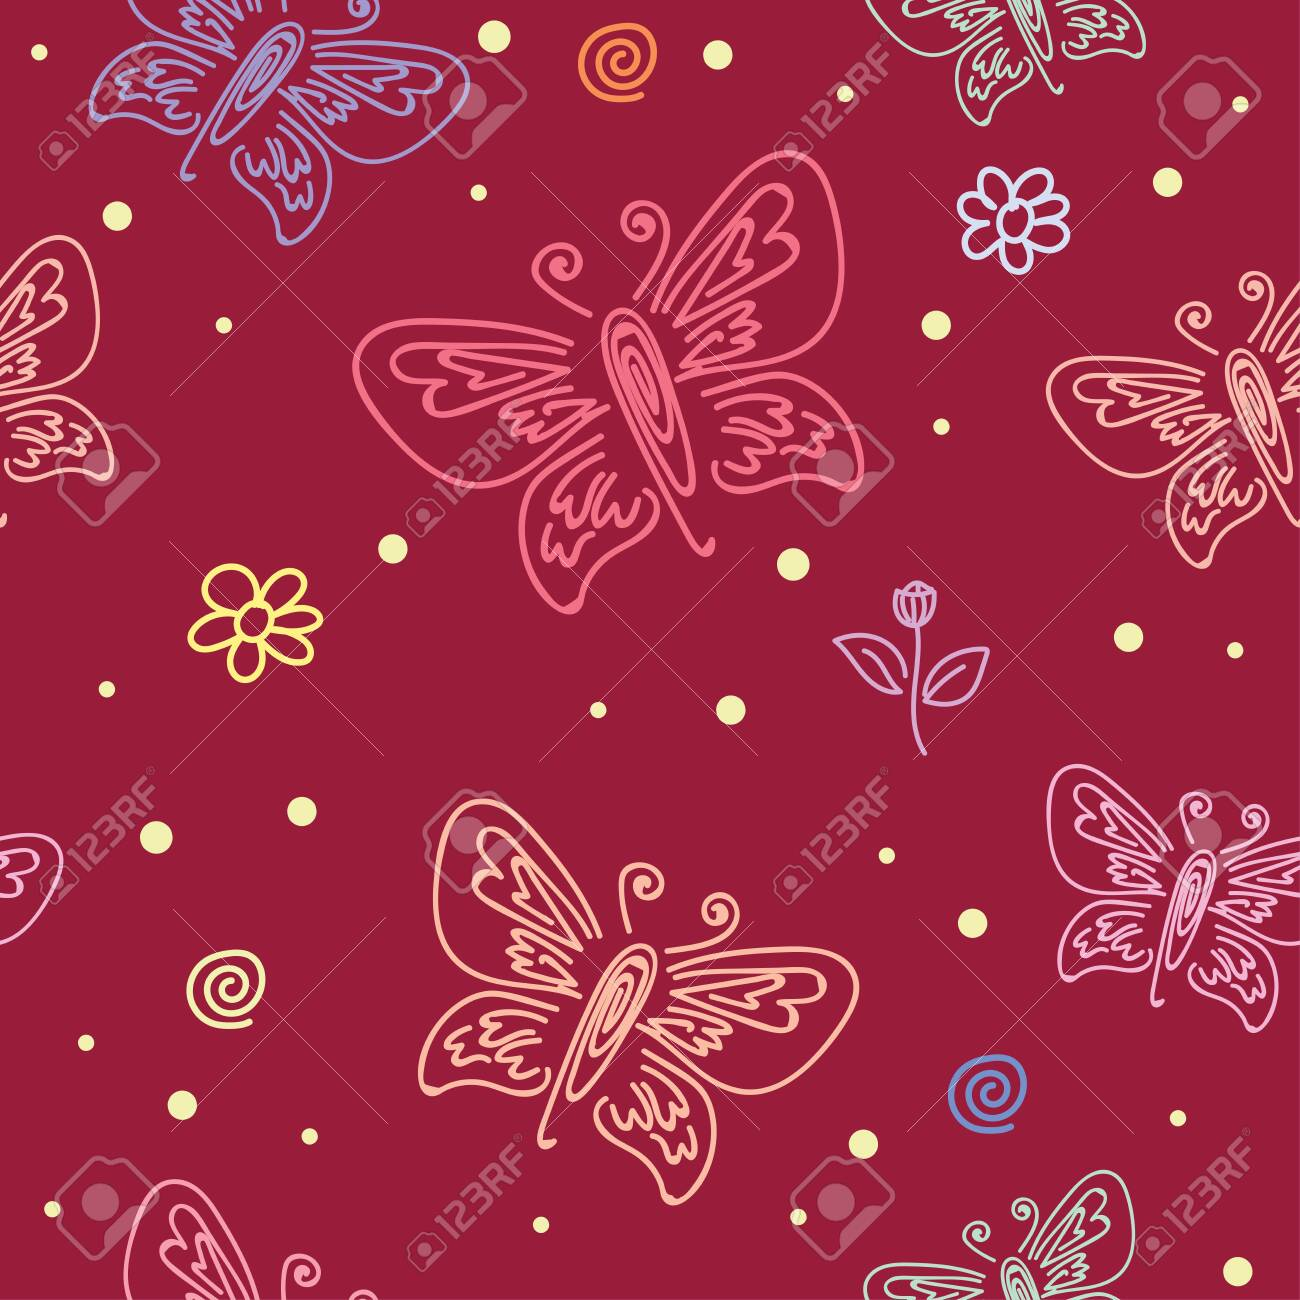 Seamless Pattern With Motifs Of Various Butterflies Butterfly Royalty Free Cliparts Vectors And Stock Illustration Image 121085043